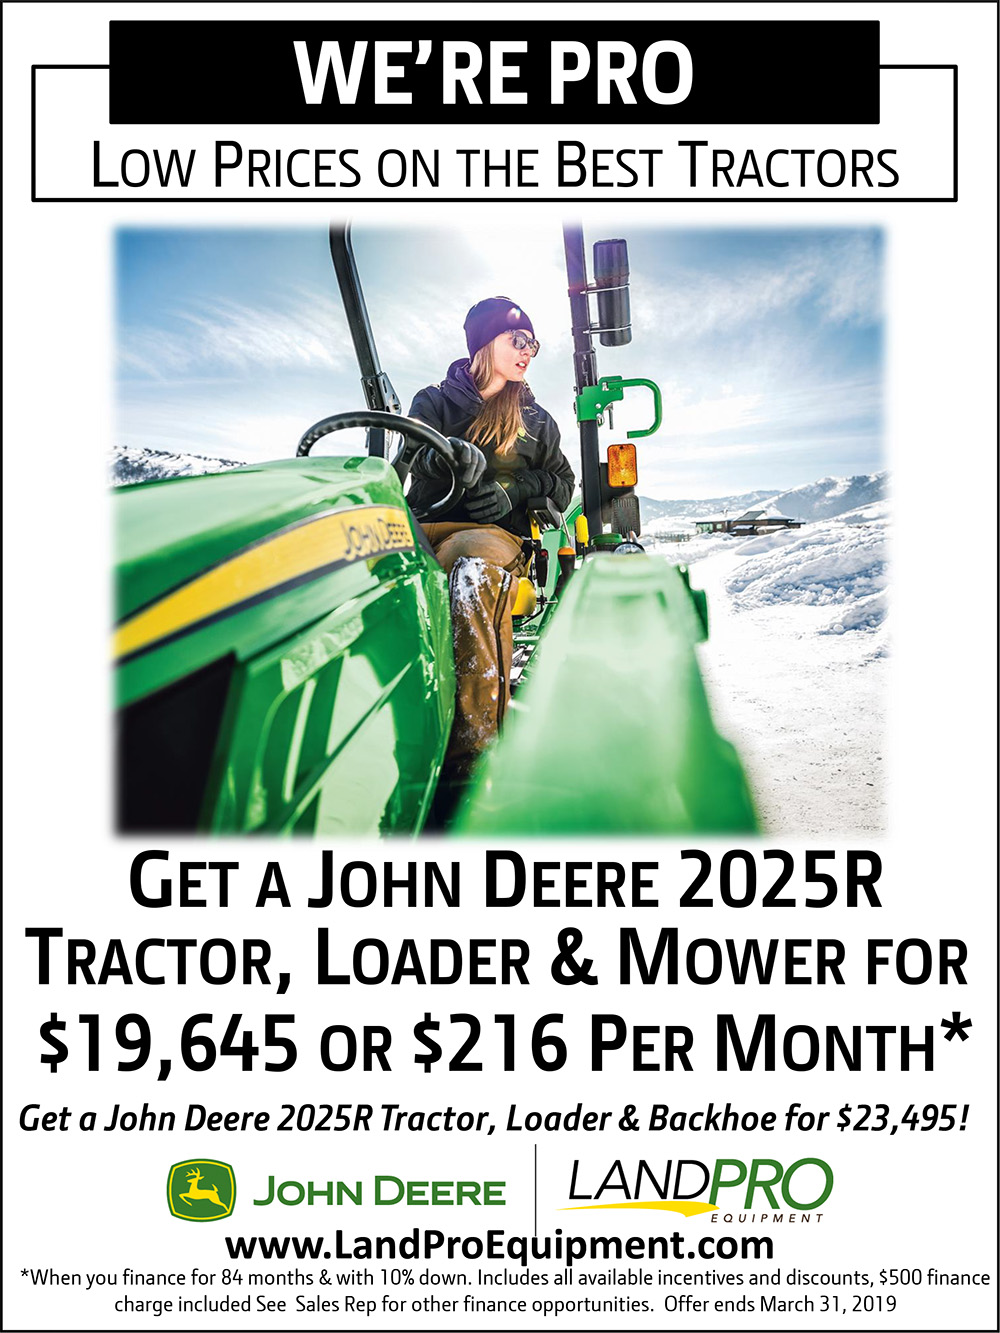 Vaughn Mower Fstdt: Compact Tractors » LandPro Equipment; NY, OH & PA